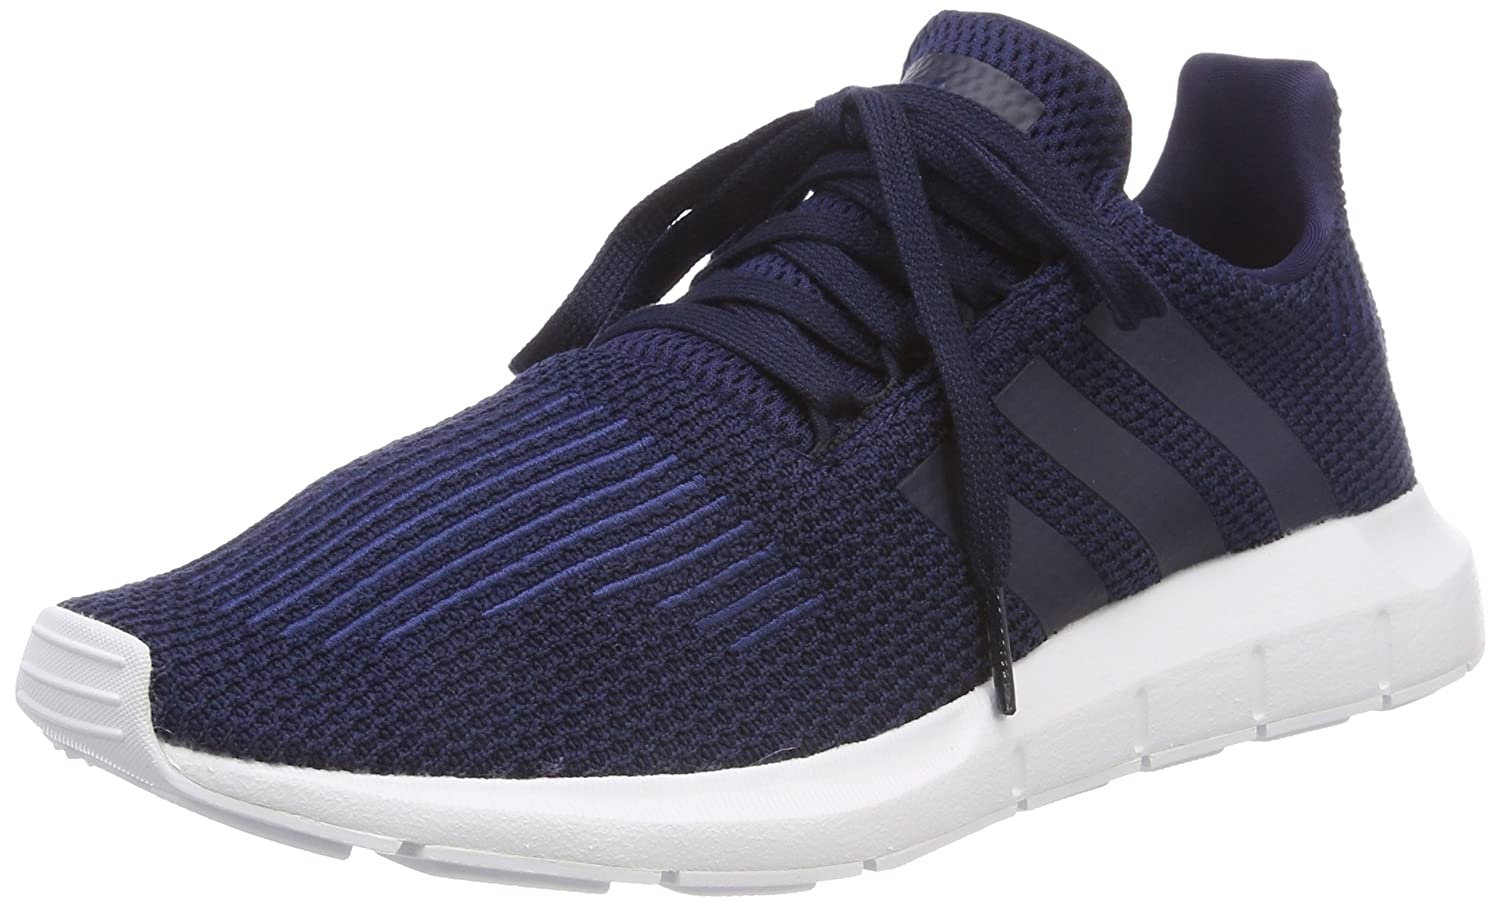 Adidas Herren Swift Run Gymnastikschuhe Gymnastikschuhe Gymnastikschuhe  36cd37